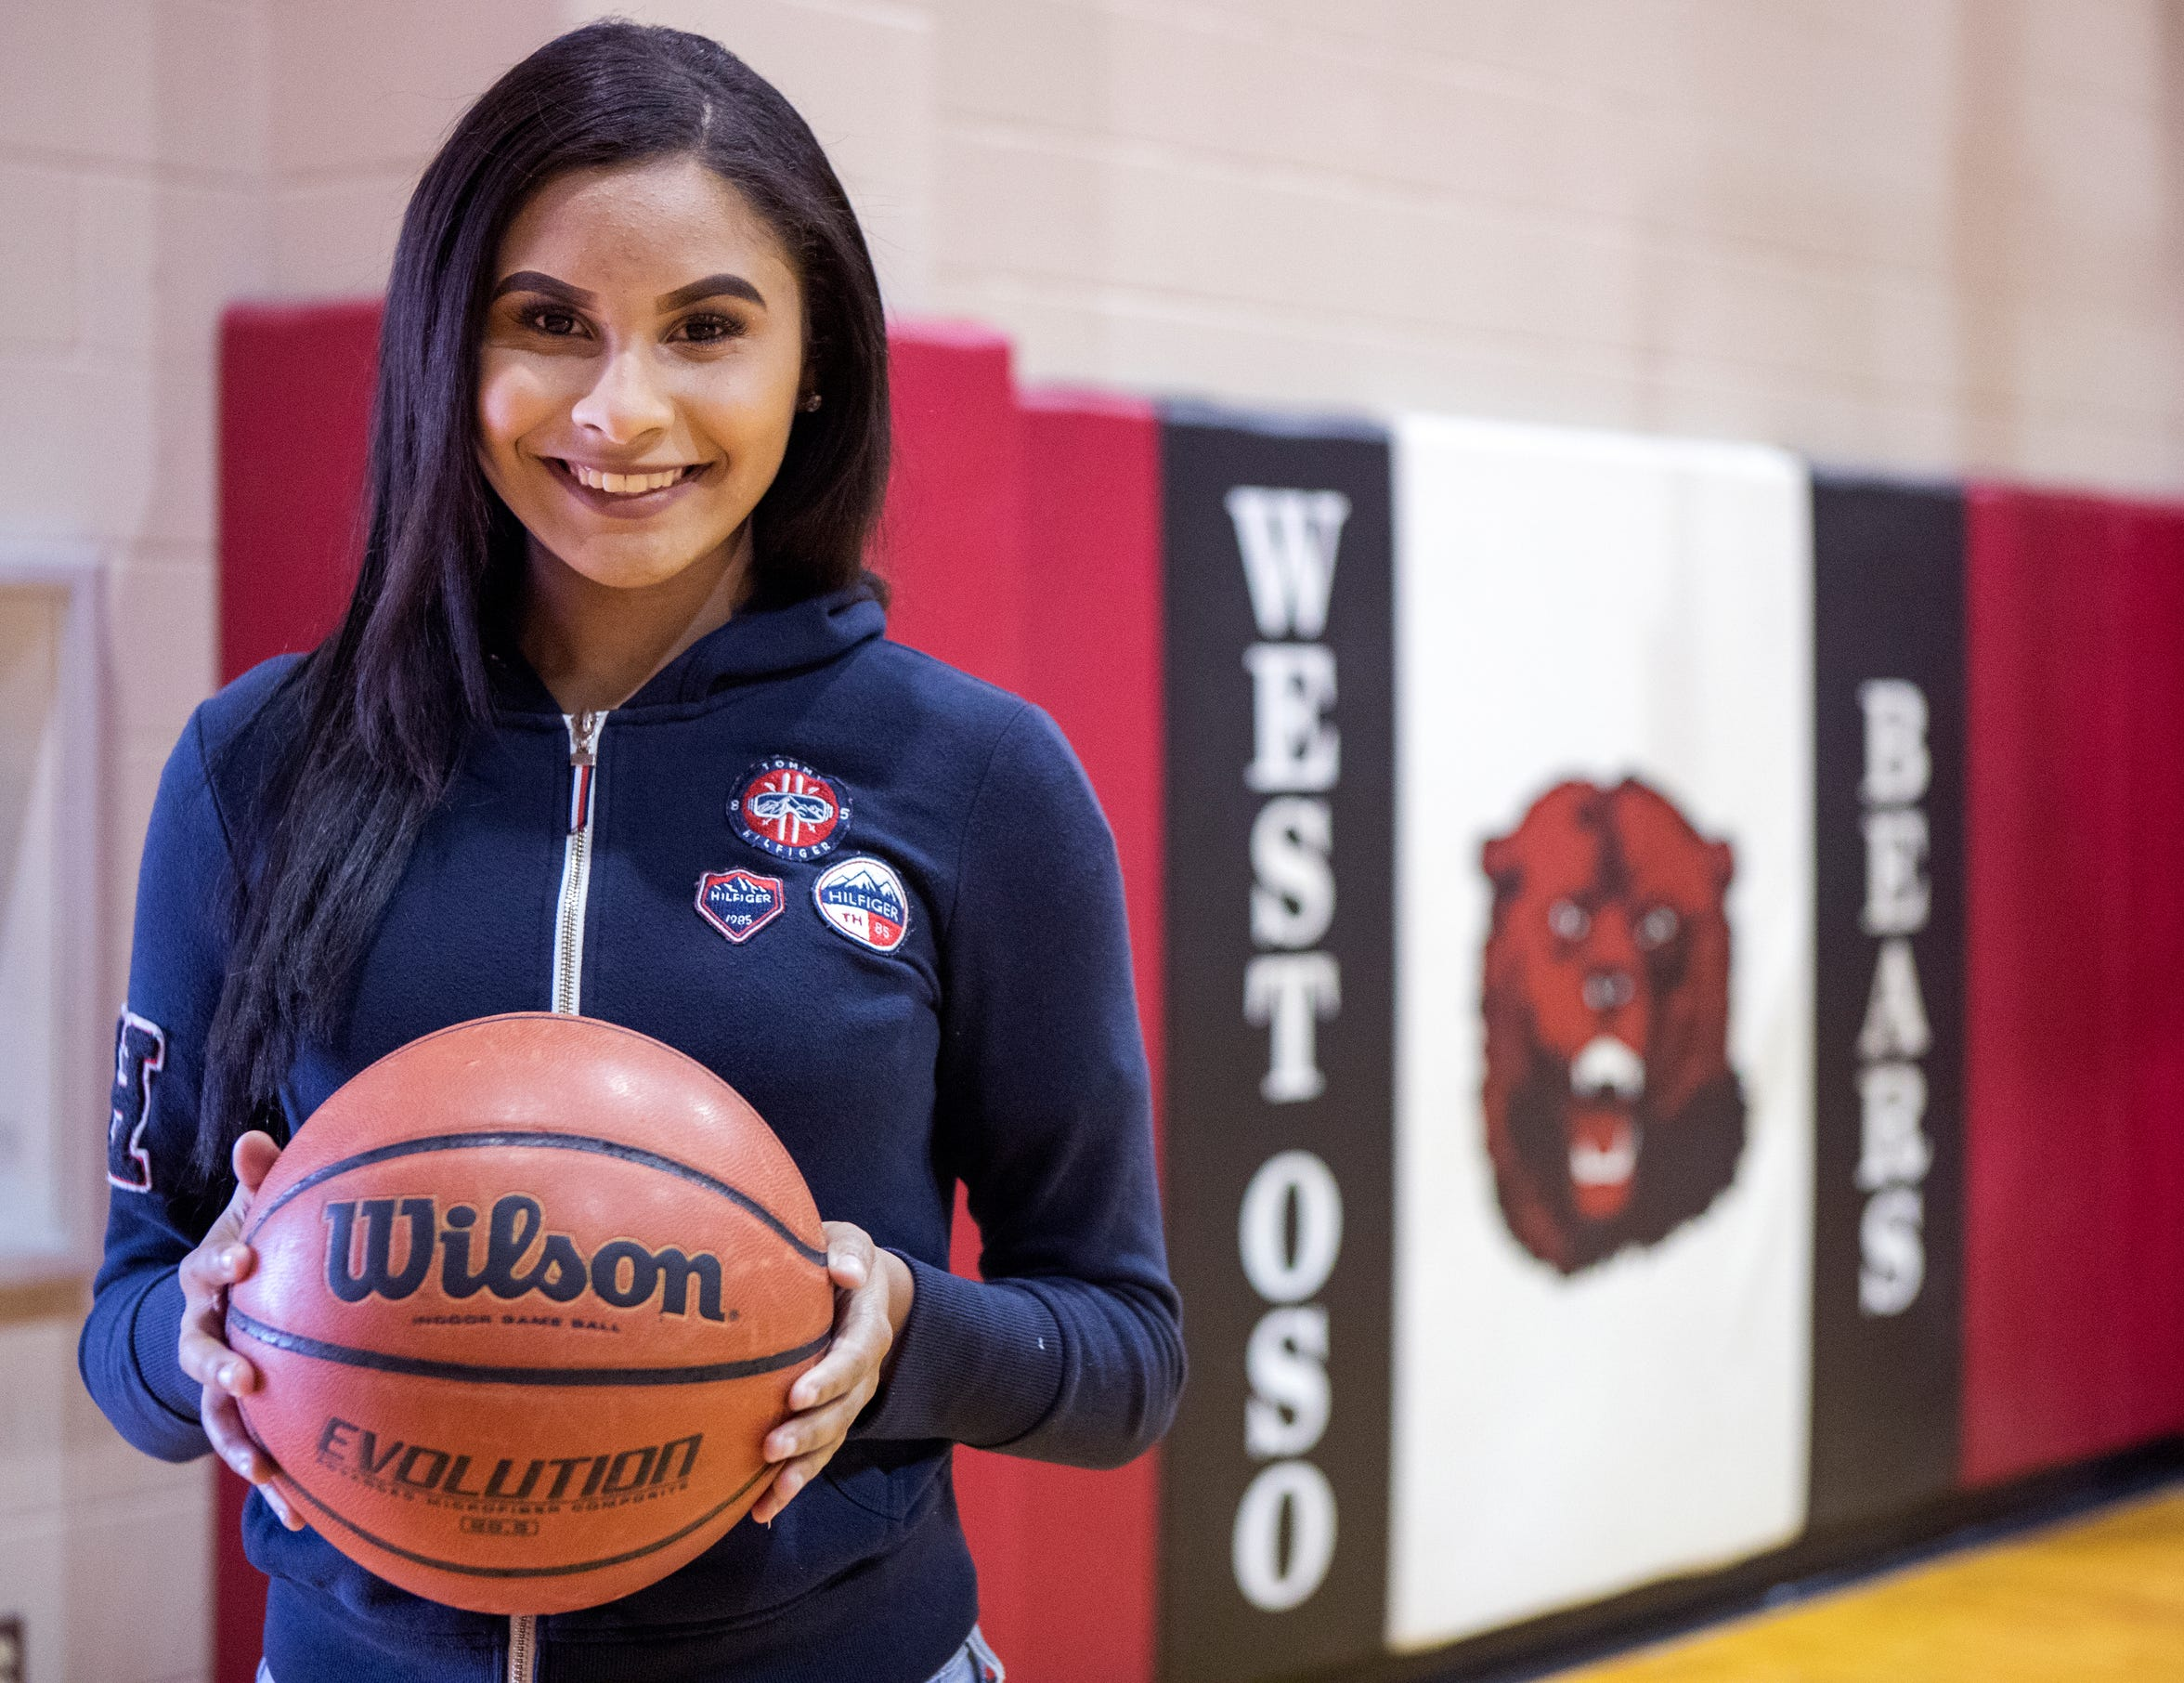 West Oso girls varsity basketball player Alyssa Grant spent two months at the bedside of her father, who was put into a coma after being shot at a convenience store.